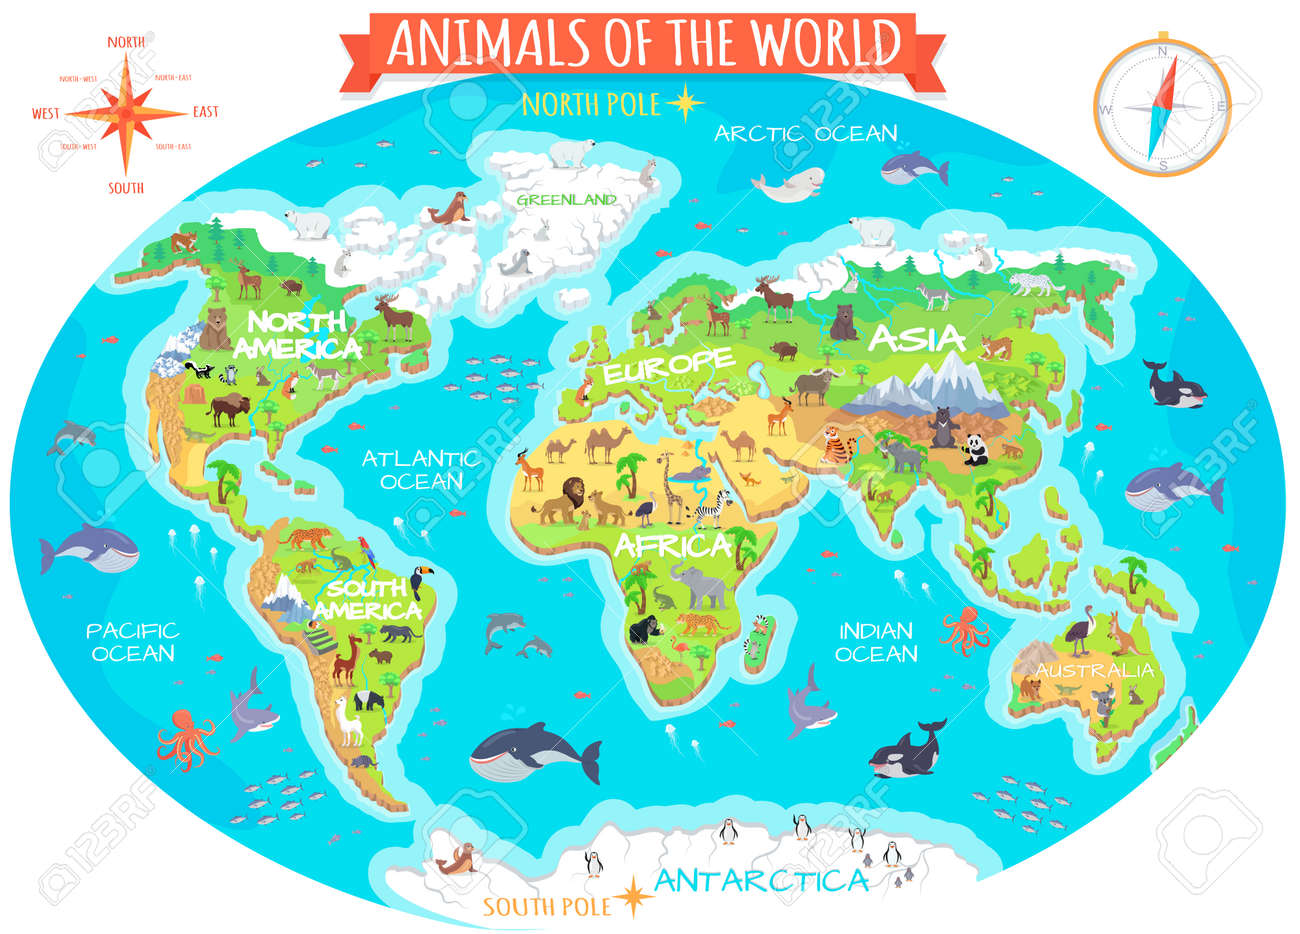 Animals of the world vector. Flat style. World globe with map.. on scale map of the world, ranger's apprentice map of the world, full map of the world, white map of the world, physical features map of the world, climate zone map of the world, satellite map of the world, american map of the world, true size map of the world, bathymetric map of the world, cool map of the world, travel map of the world, game of thrones map of the world, current map of the world, basic map of the world, elder scrolls map of the world, peters projection map of the world, entire map of the world, new yorker map of the world,